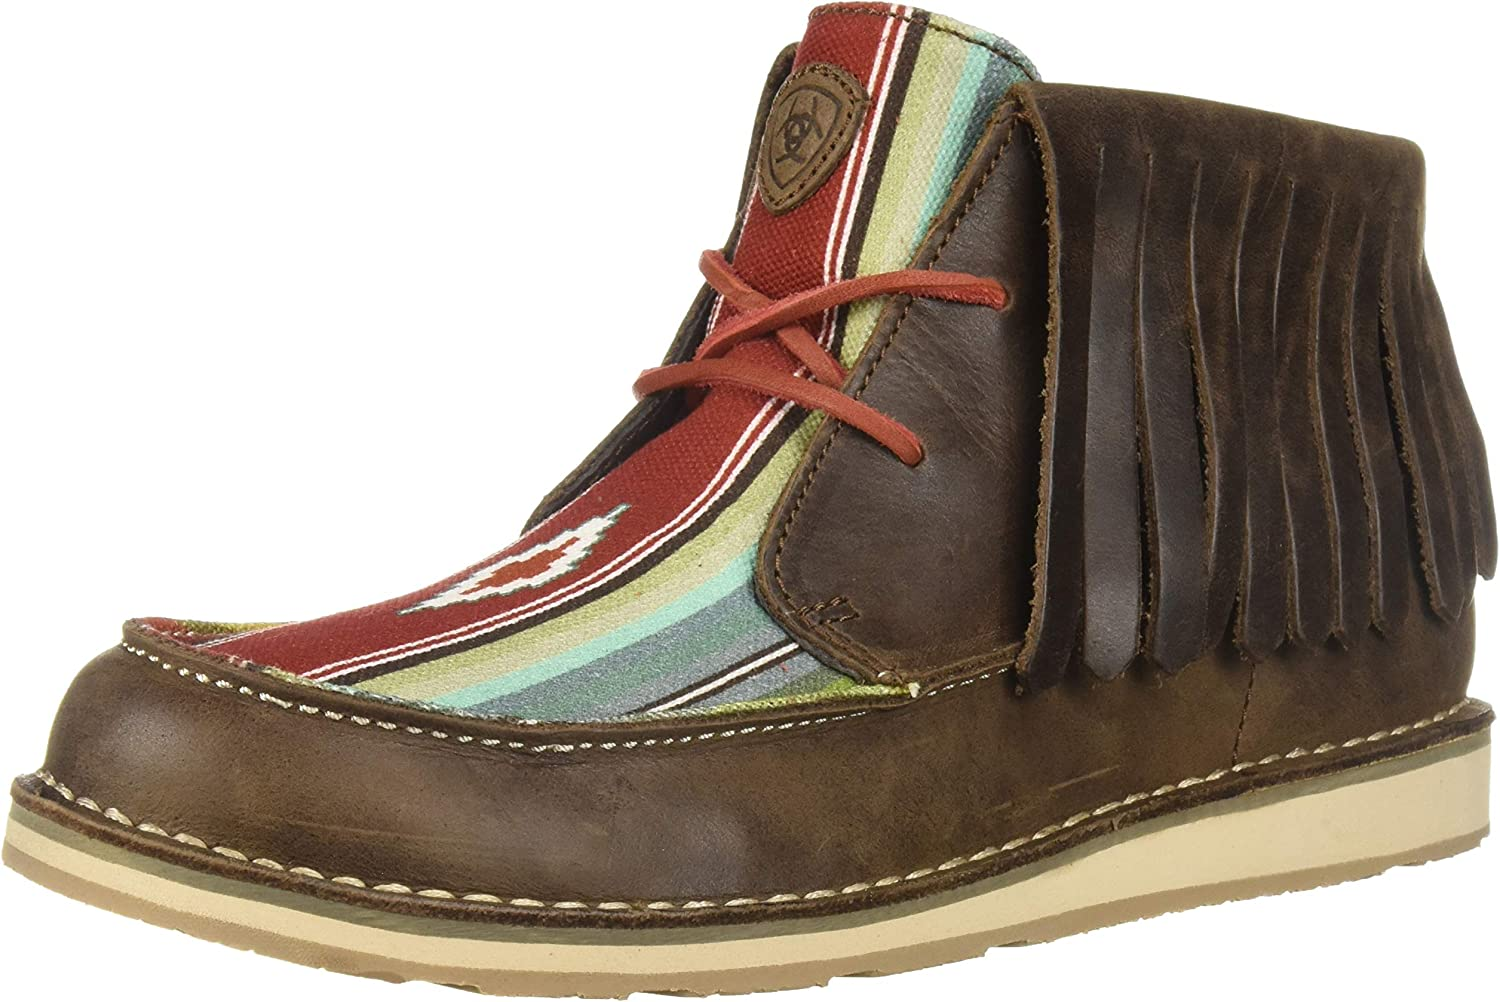 Ariat Women's Cruiser Fringe Work Boots